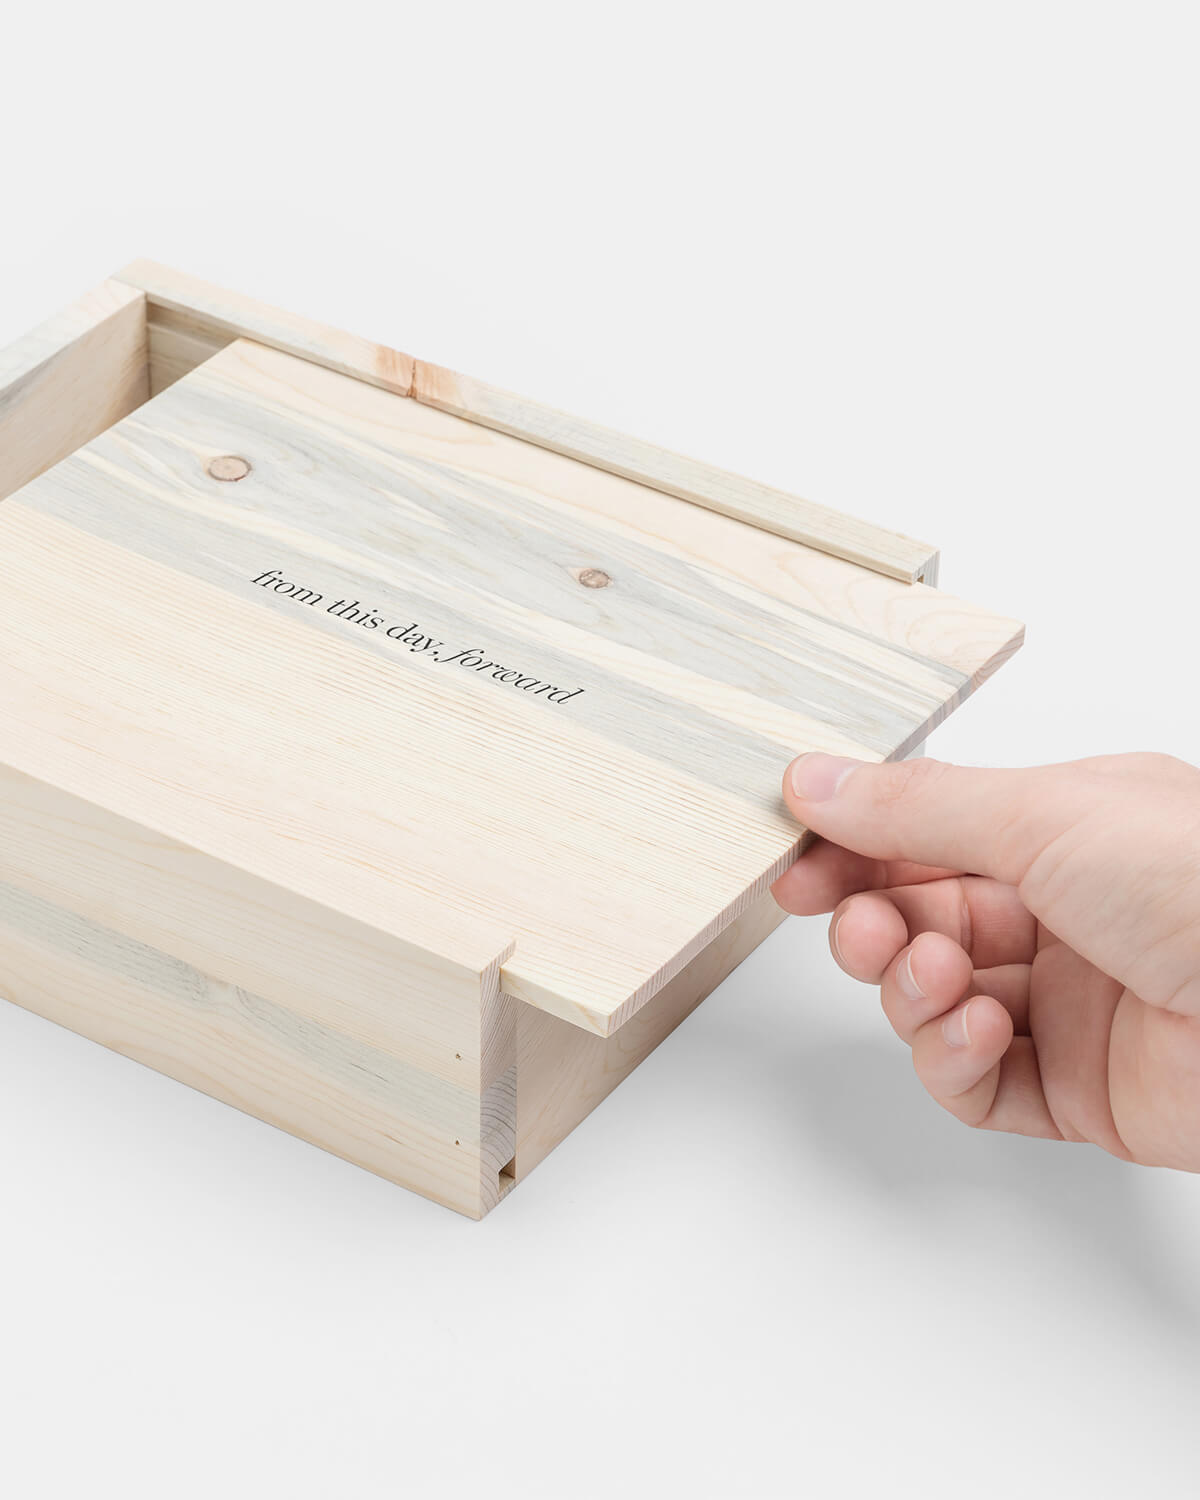 wooden quote box being opened by hand